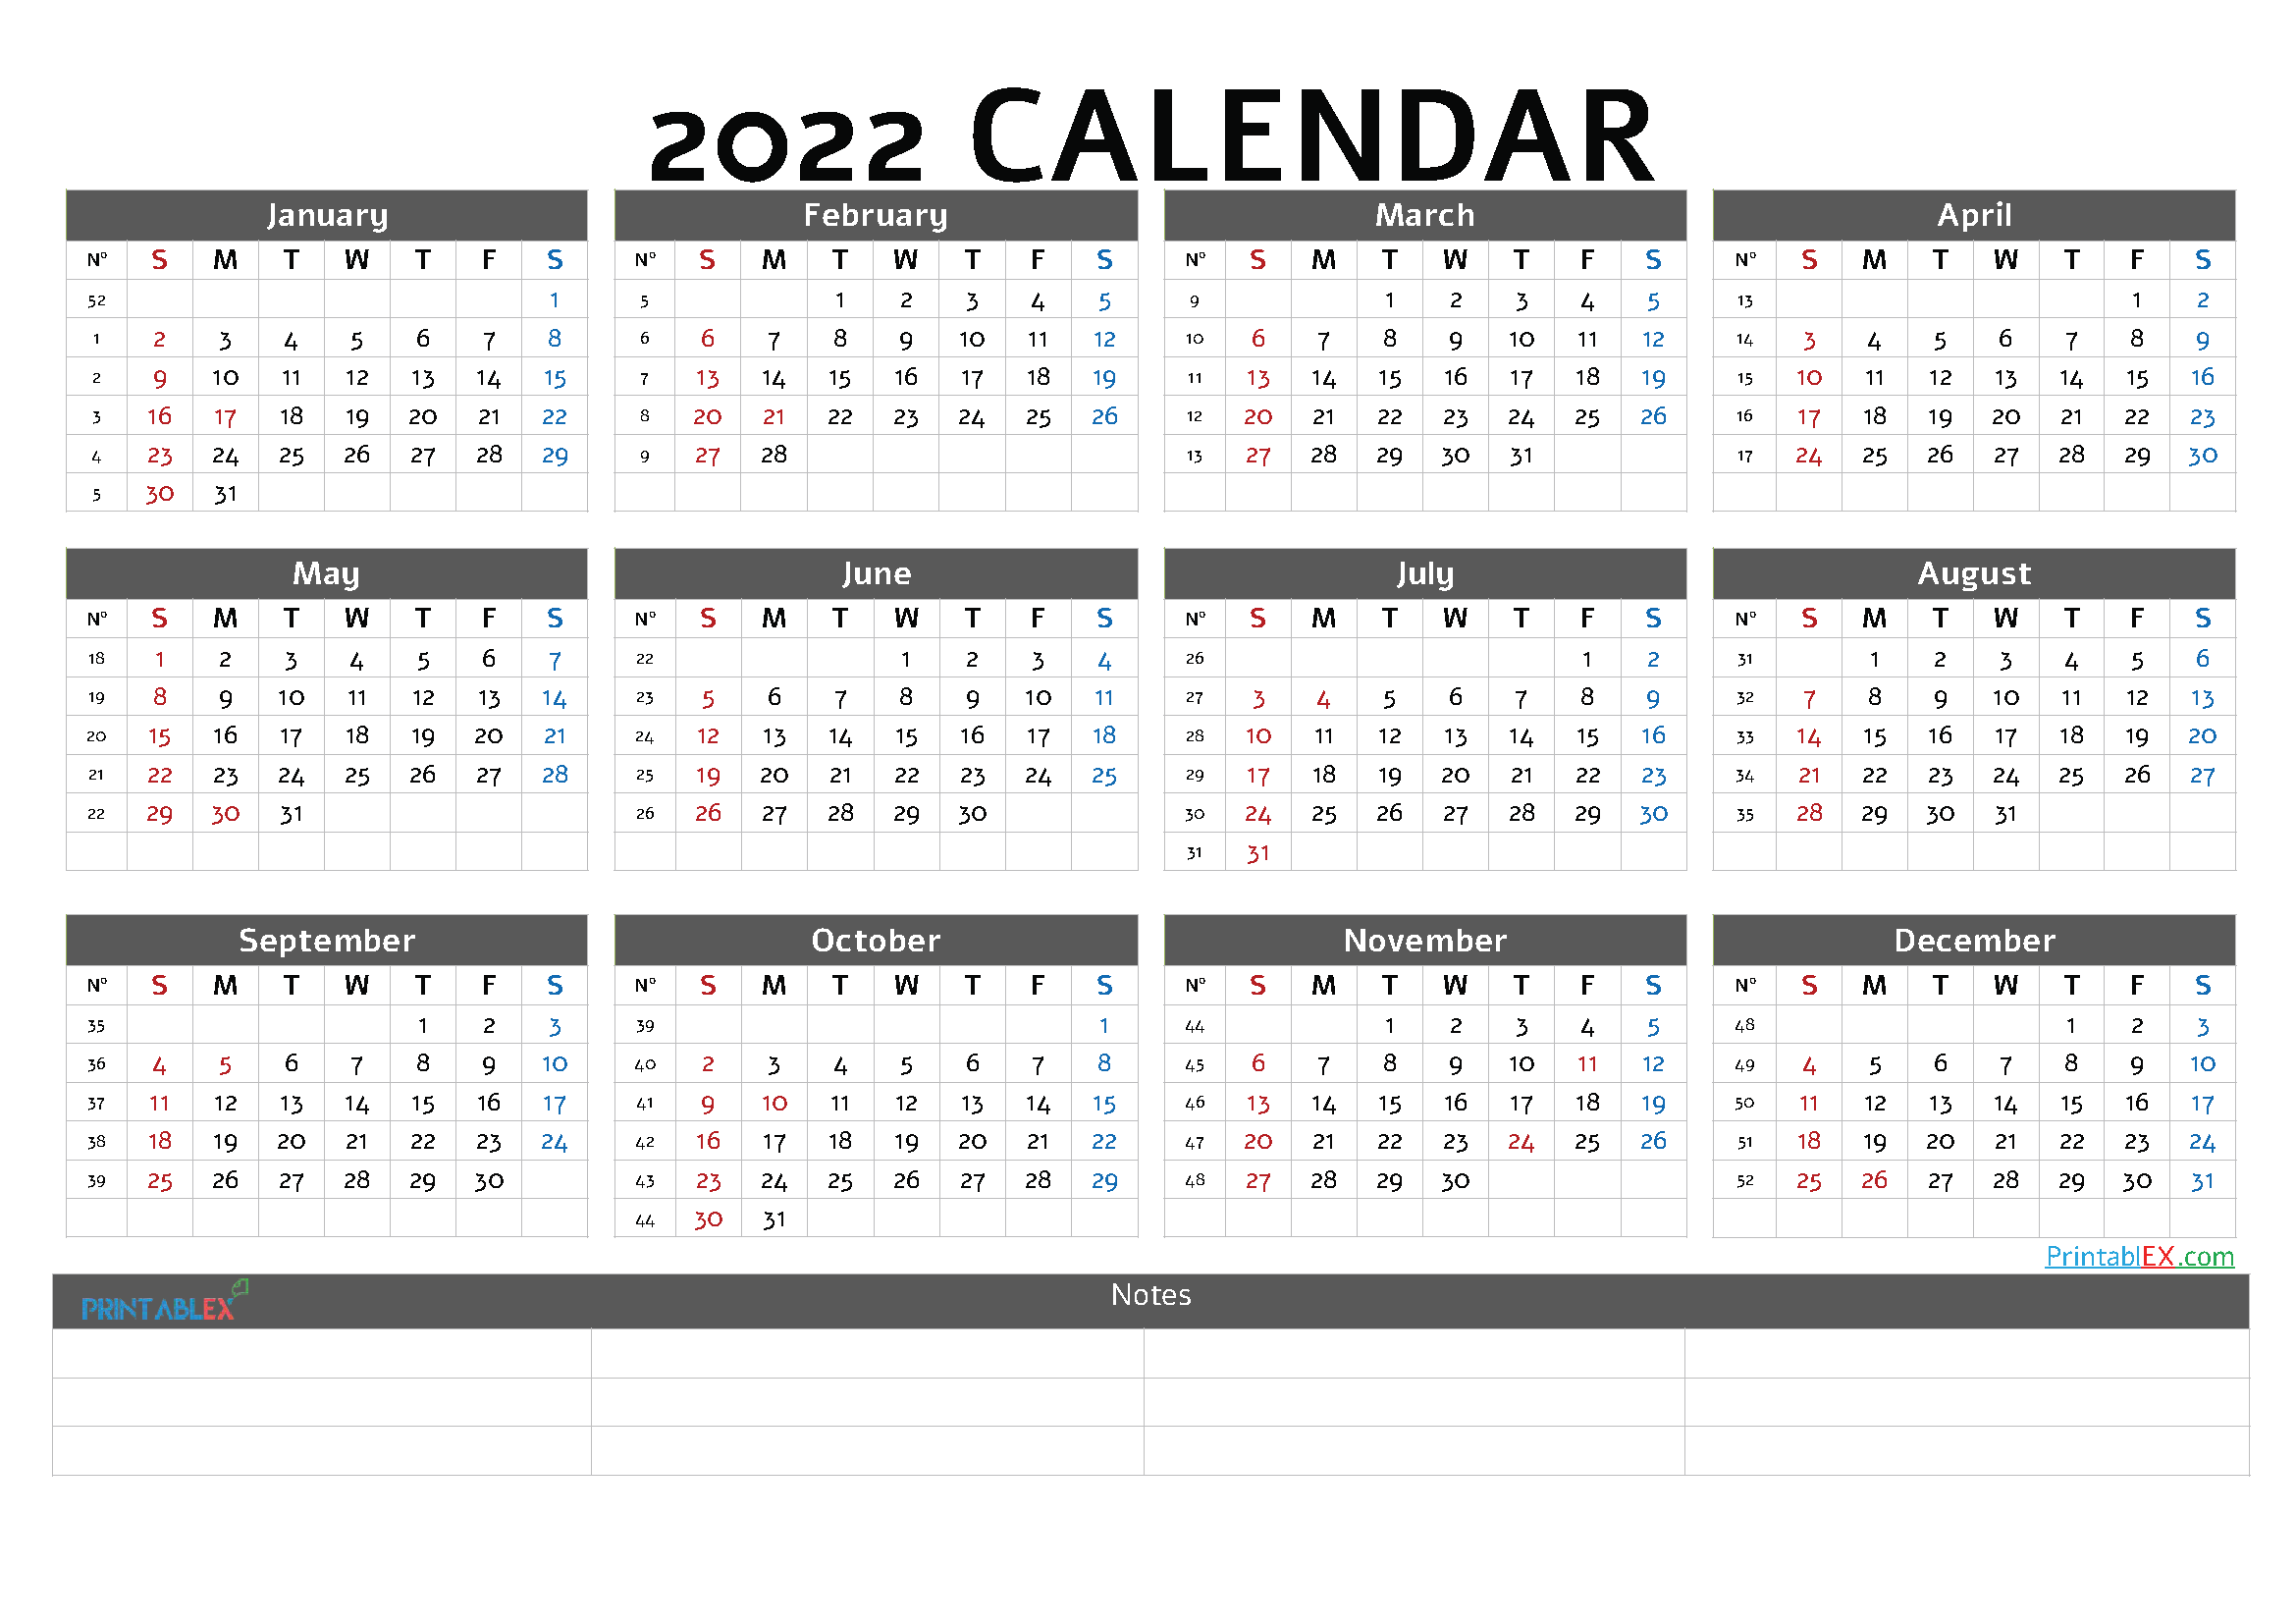 2022 Printable Yearly Calendar with Week Numbers (Font: amade)